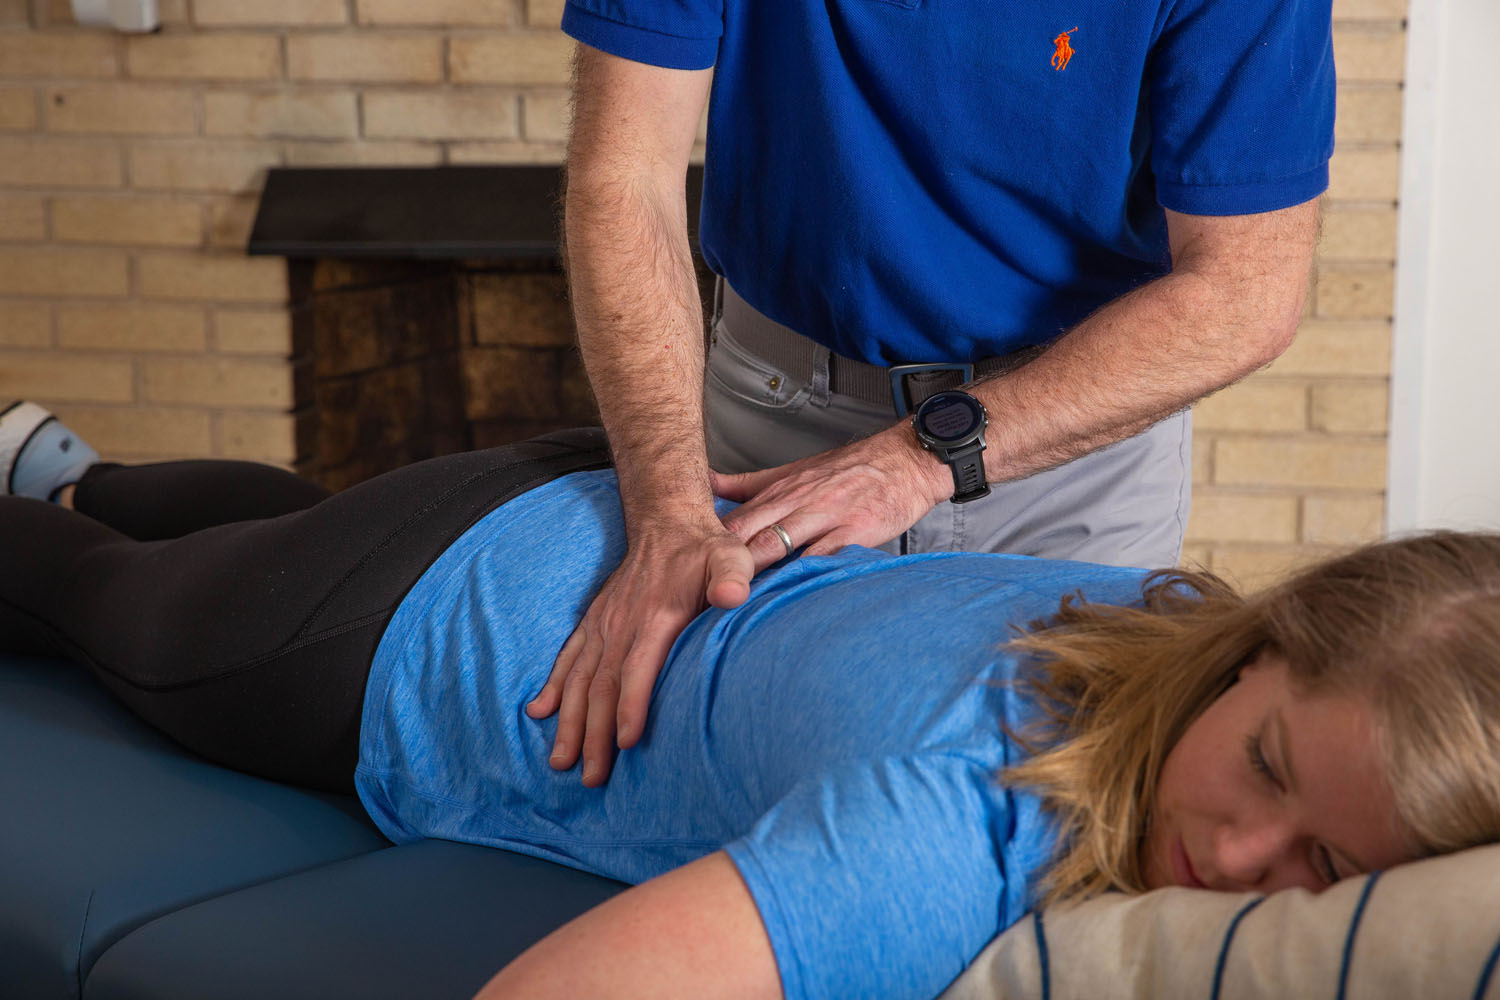 Manual therapy is the most common form of physical therapy. It typically involves hands-on manipulation by the therapist of a patient's specific joints and/or body tissues.